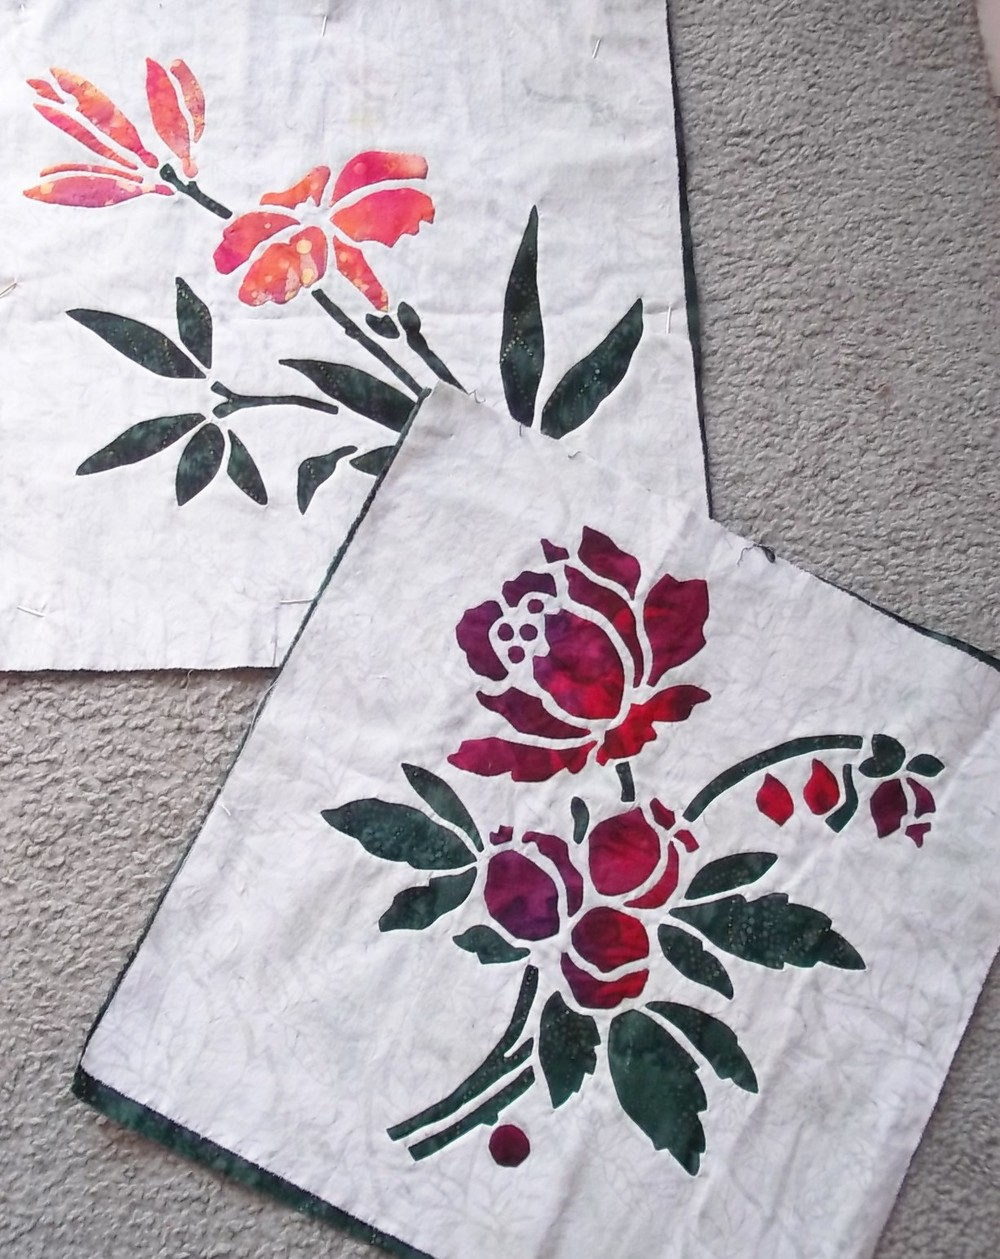 Lily and Rose, 3 colors, applique and reverse applique